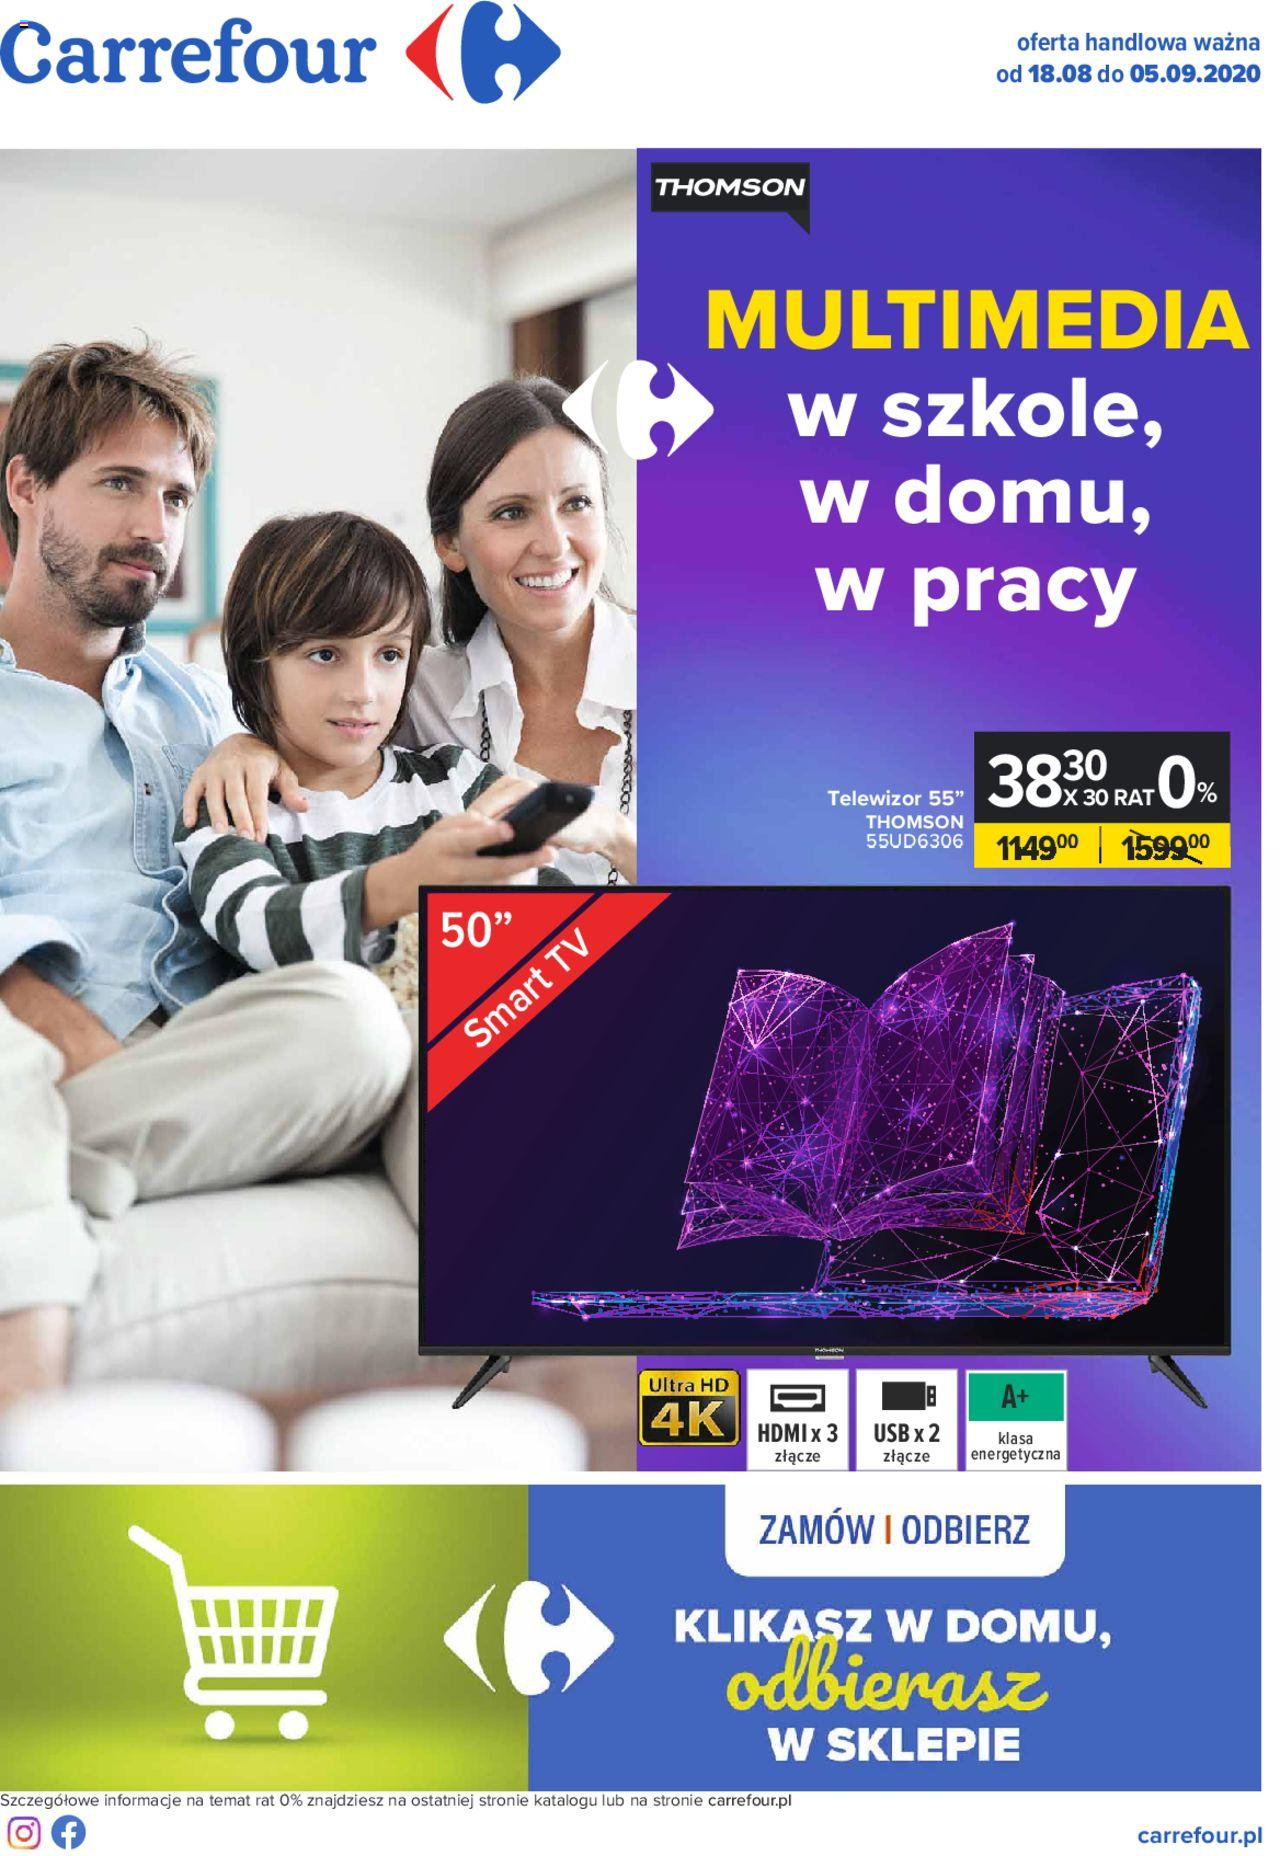 Carrefour Gazetka Multimedia ważna od 18.08.2020 do  05.09.2020